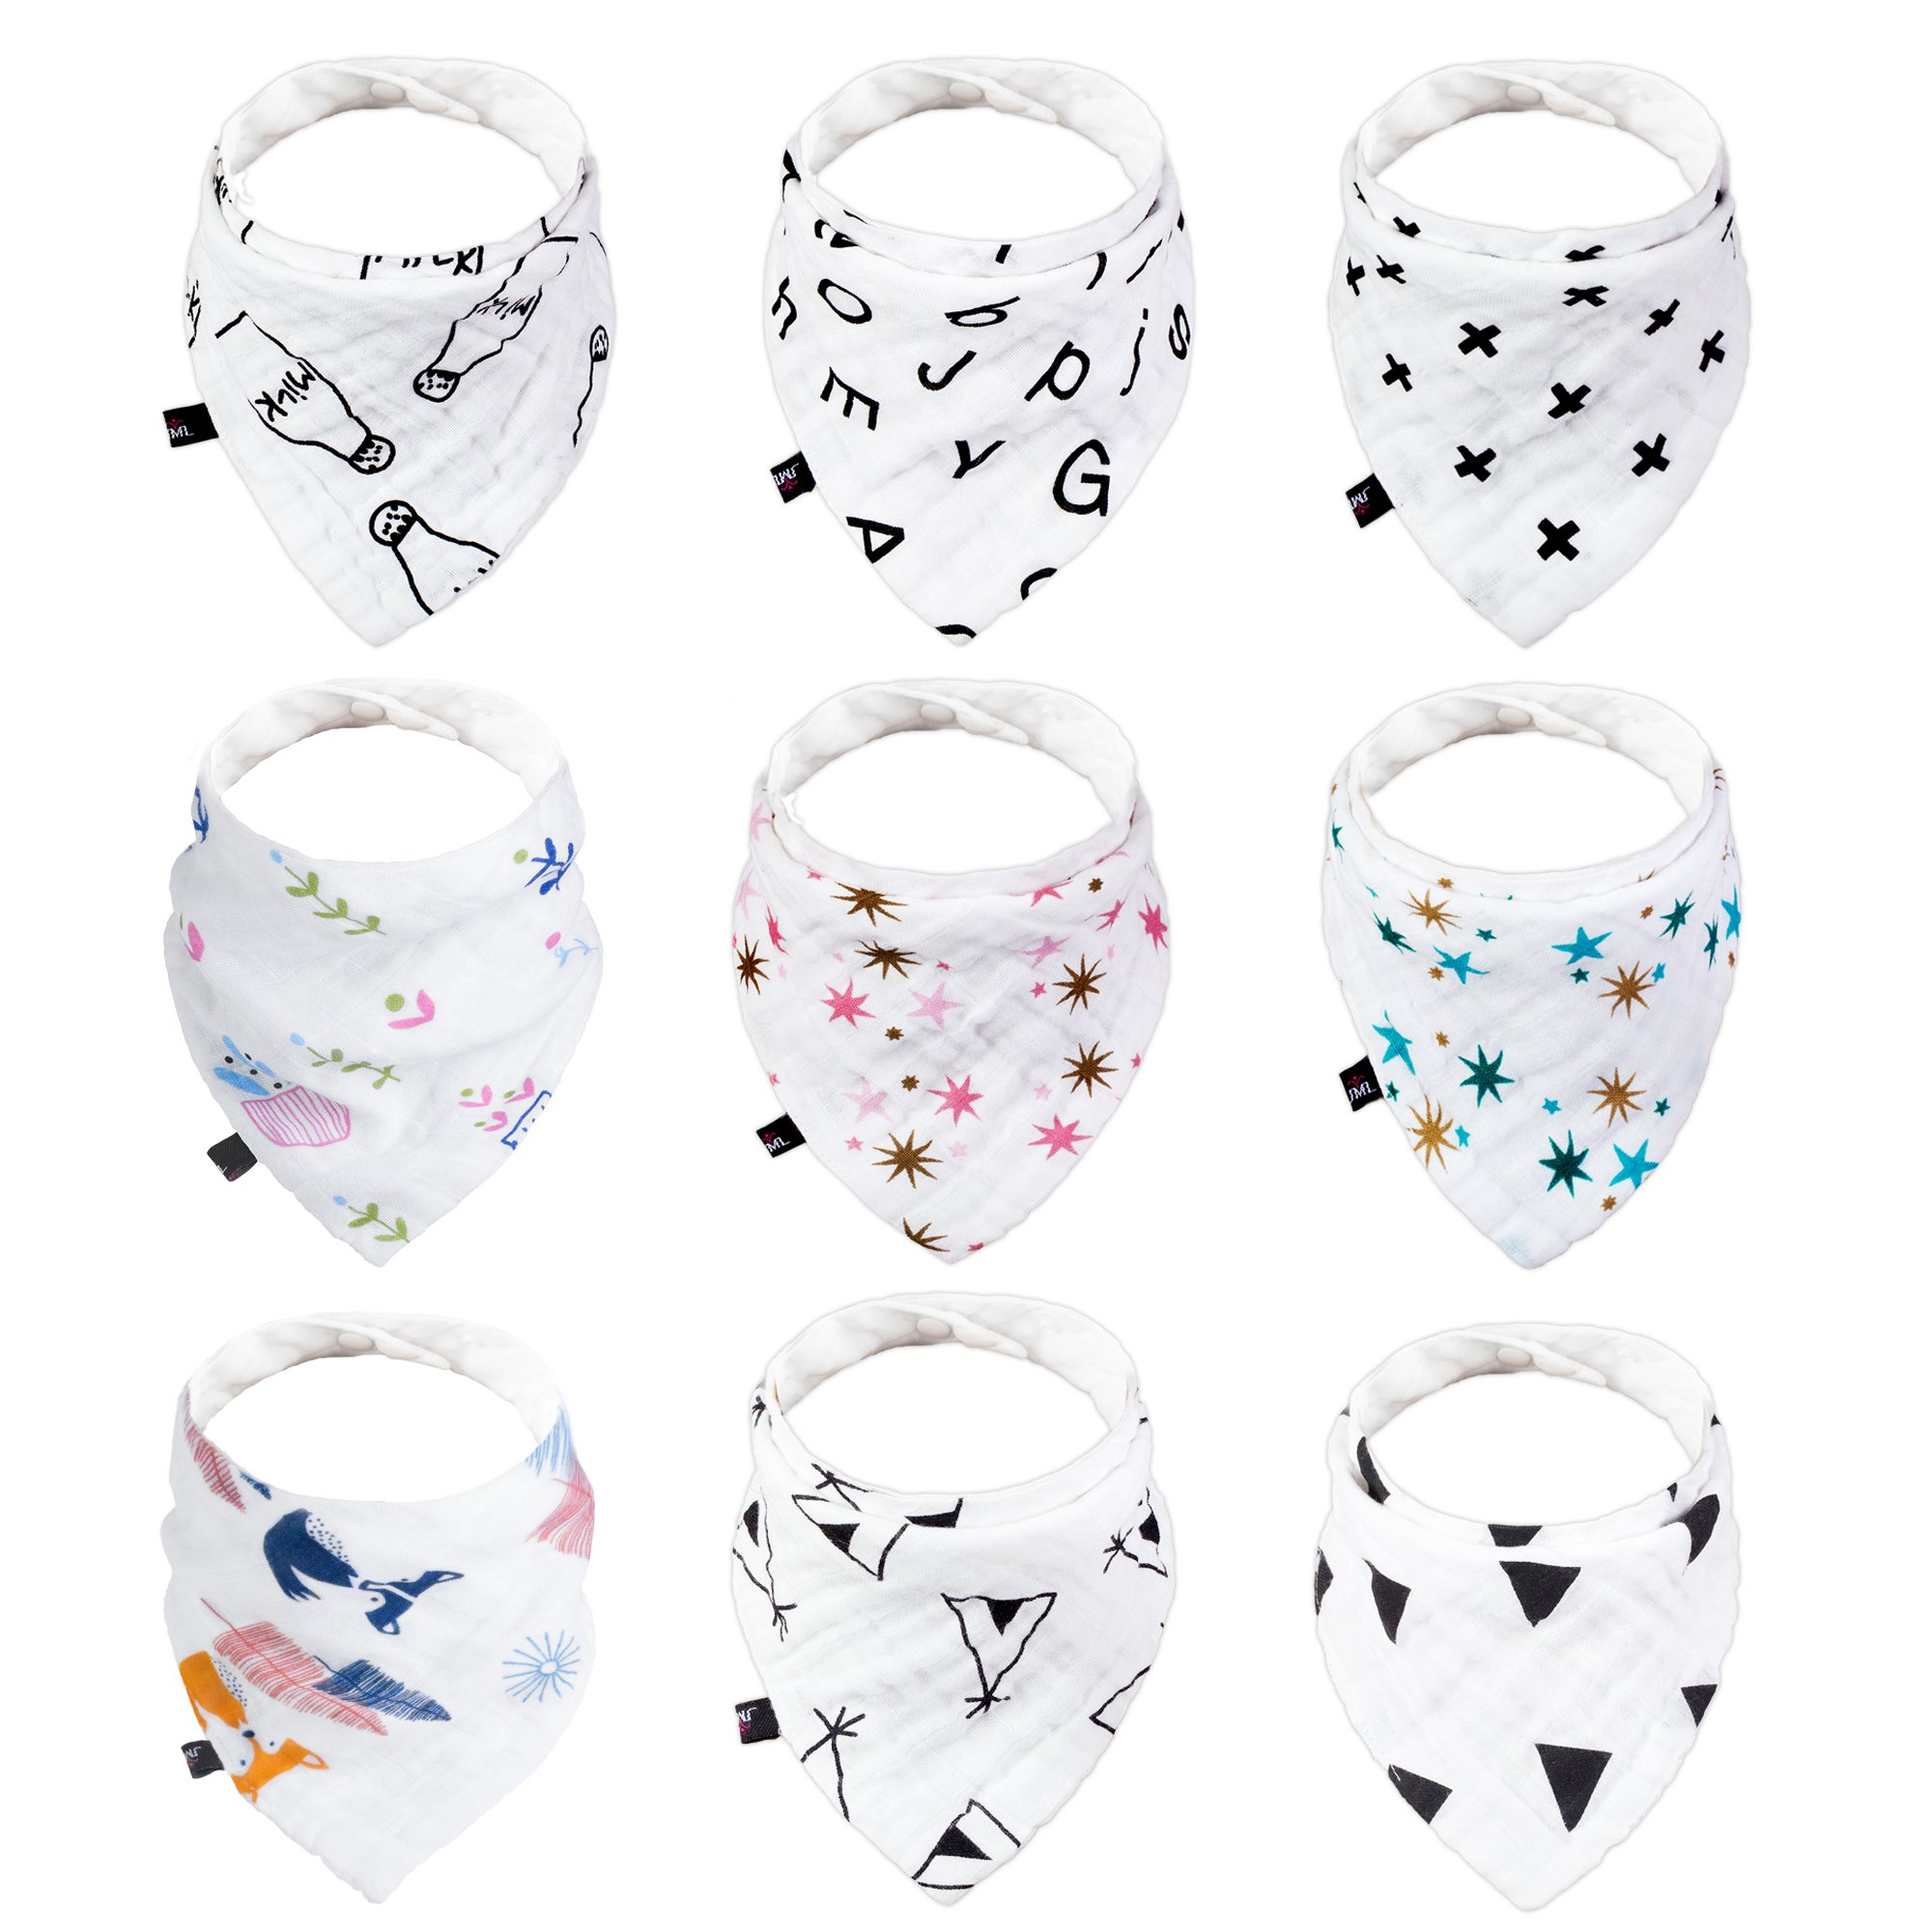 Baby Drool Bibs, JML Bandana Cotton Bib Set 9 Pack - Soothingly Soft Chafe-Free Comfort and Hypoallergenic and Absorbent, Adjustable Snap for Babies & Toddlers (6-24 Months)